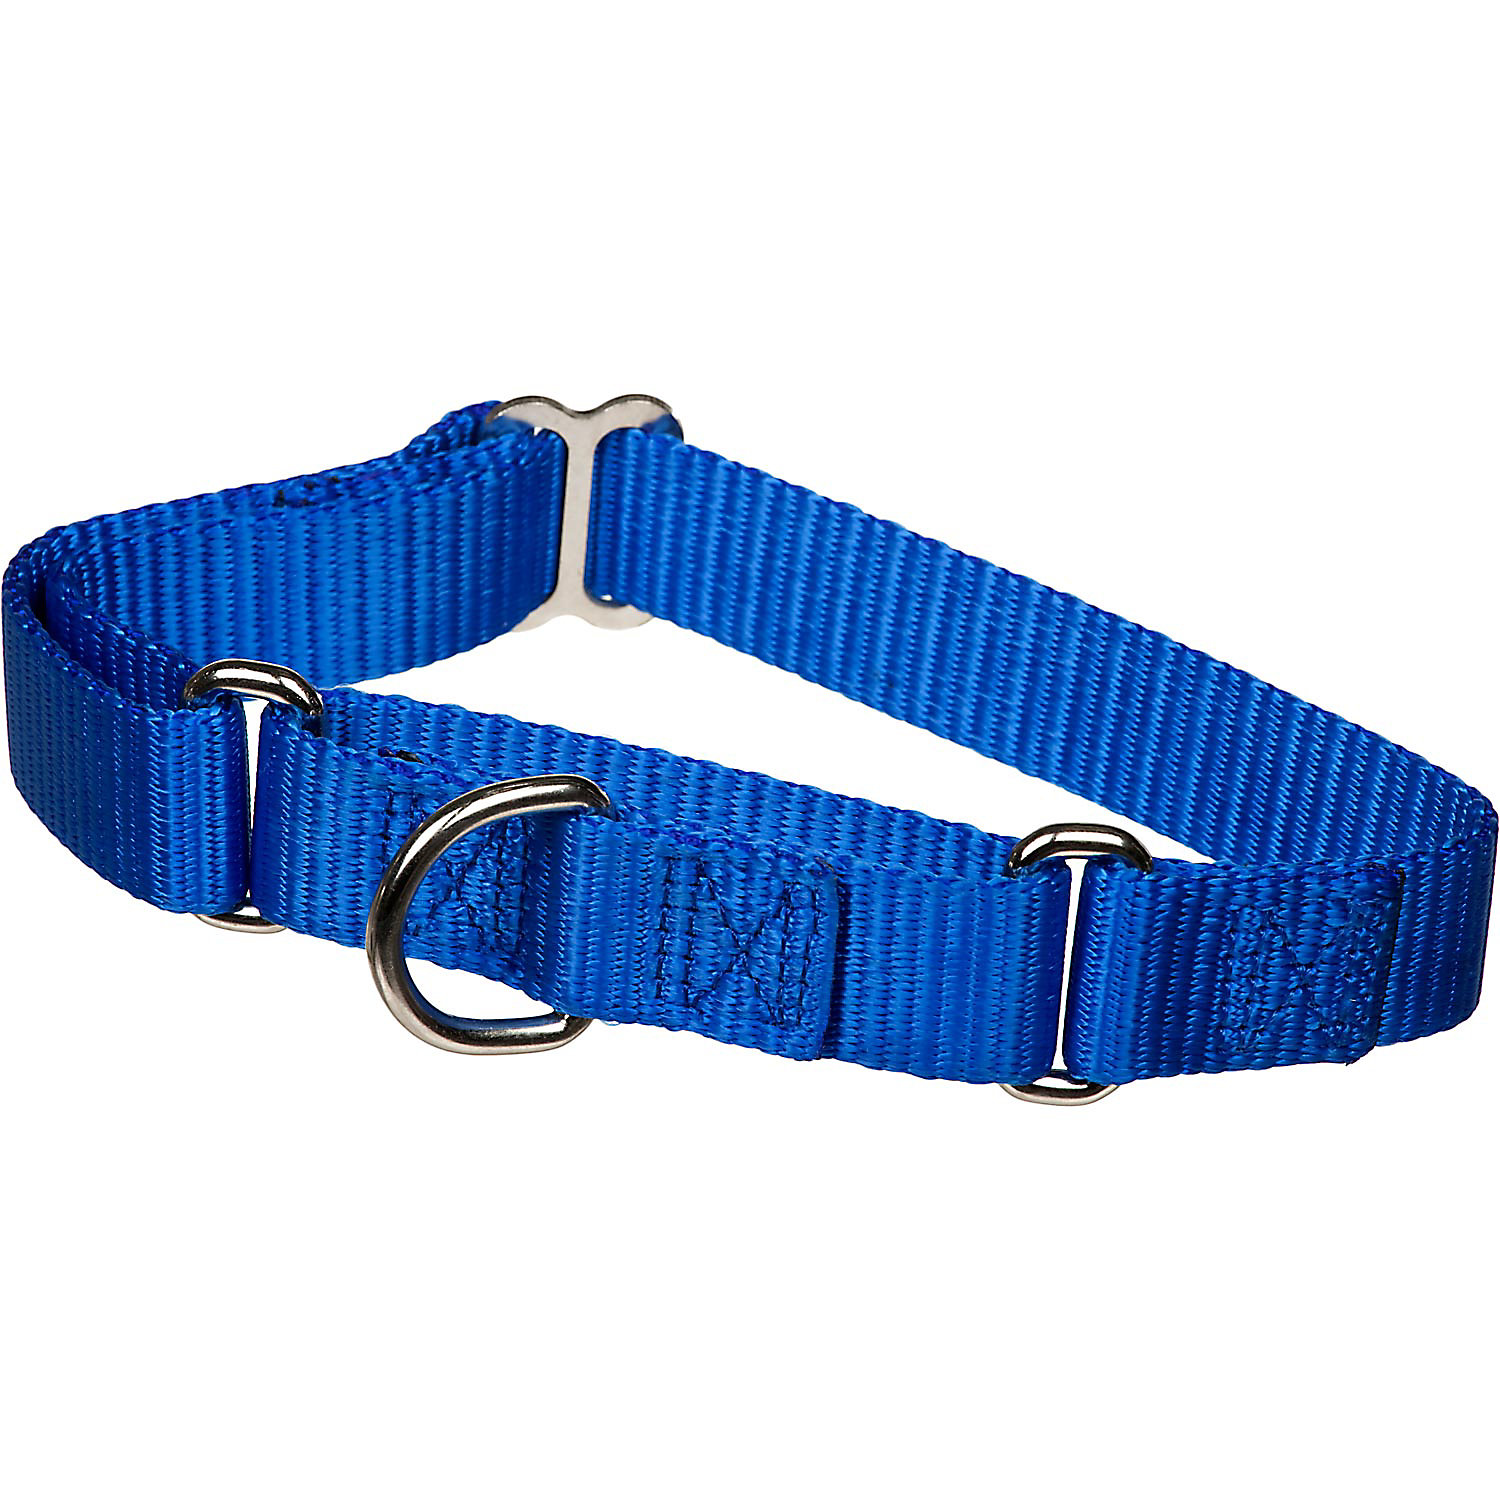 The Grrrip X Tra Control Collar In Blue Small